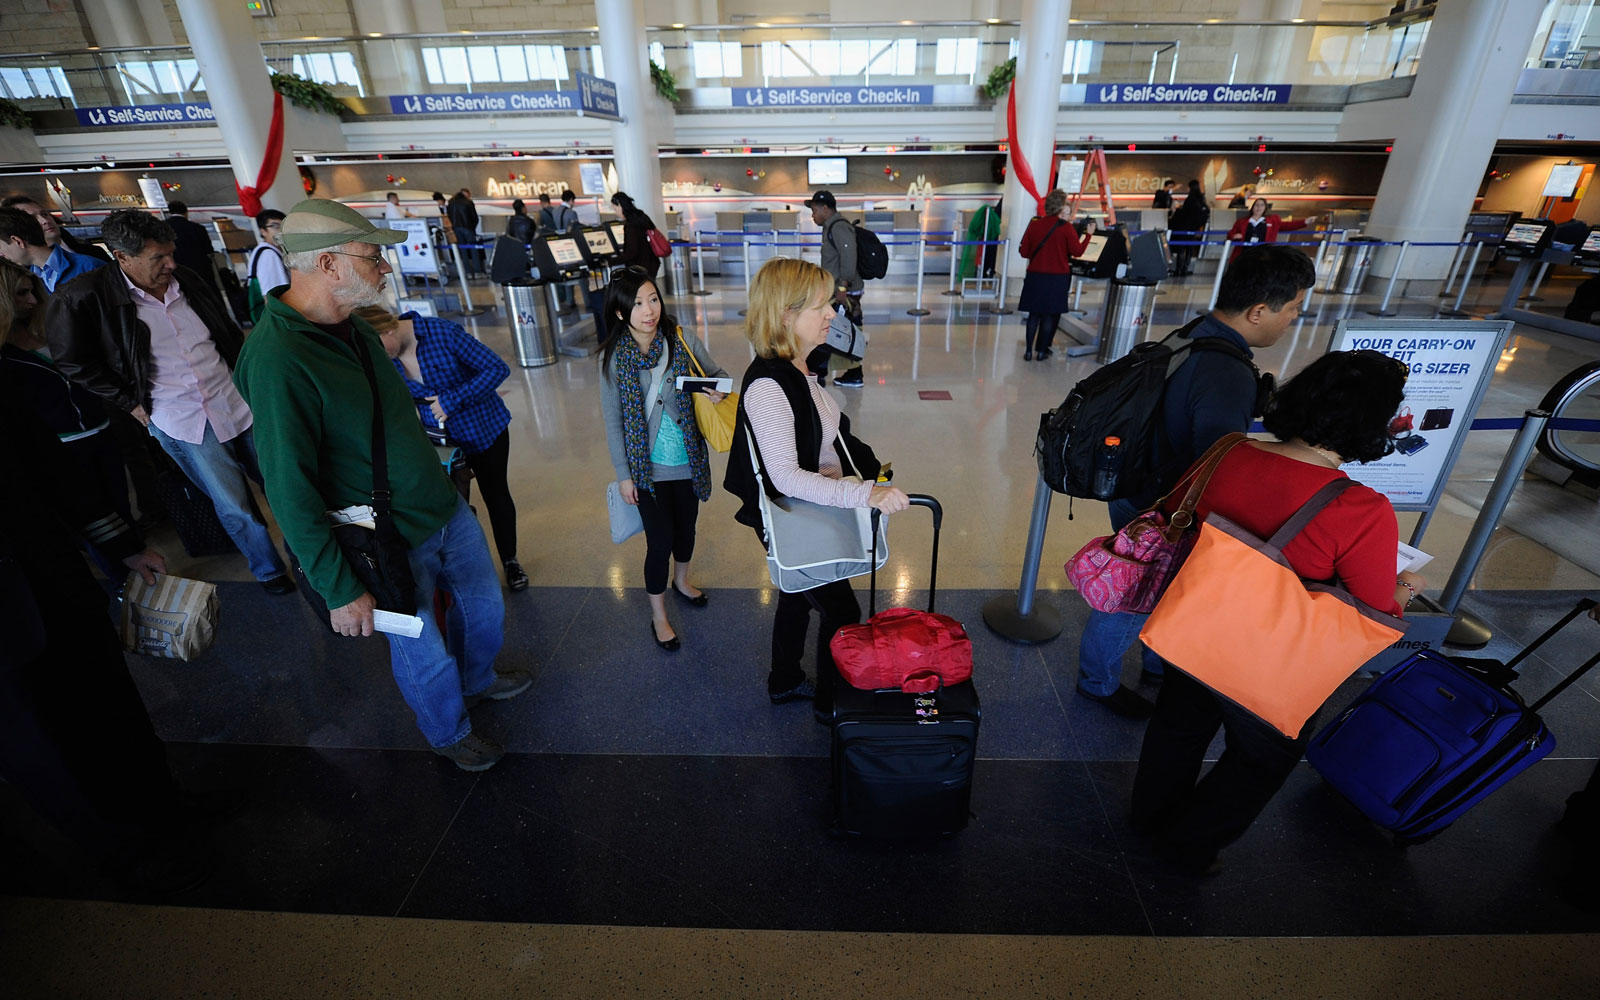 Paging Ferris Bueller: American Airlines new boarding process has *nine* different groups.